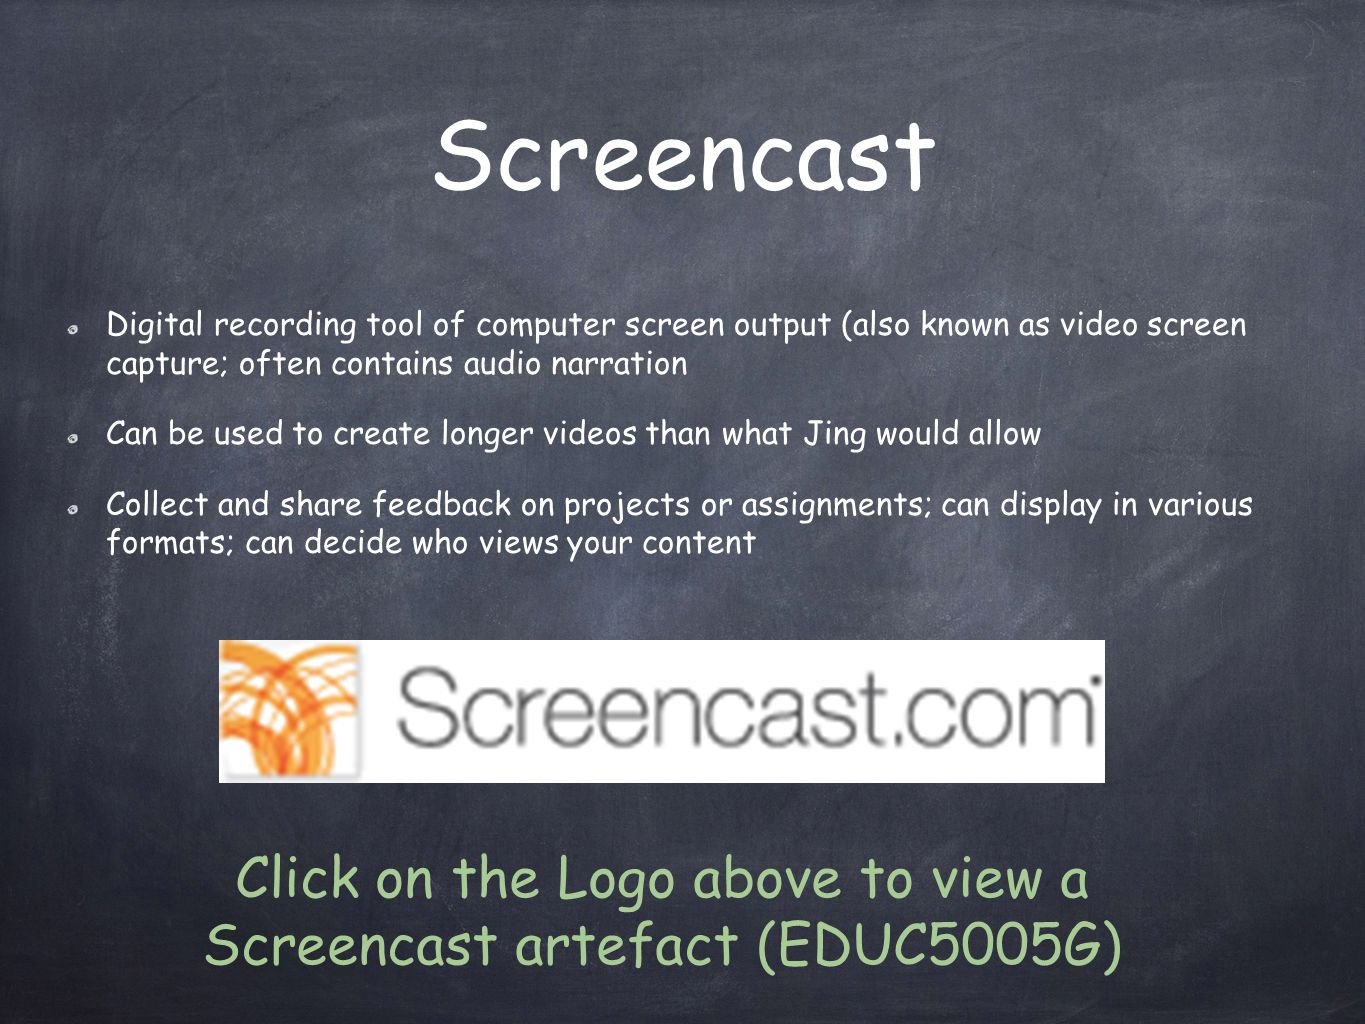 Screencast Digital recording tool of computer screen output (also known as video screen capture; often contains audio narration Can be used to create longer videos than what Jing would allow Collect and share feedback on projects or assignments; can display in various formats; can decide who views your content Click on the Logo above to view a Screencast artefact (EDUC5005G)